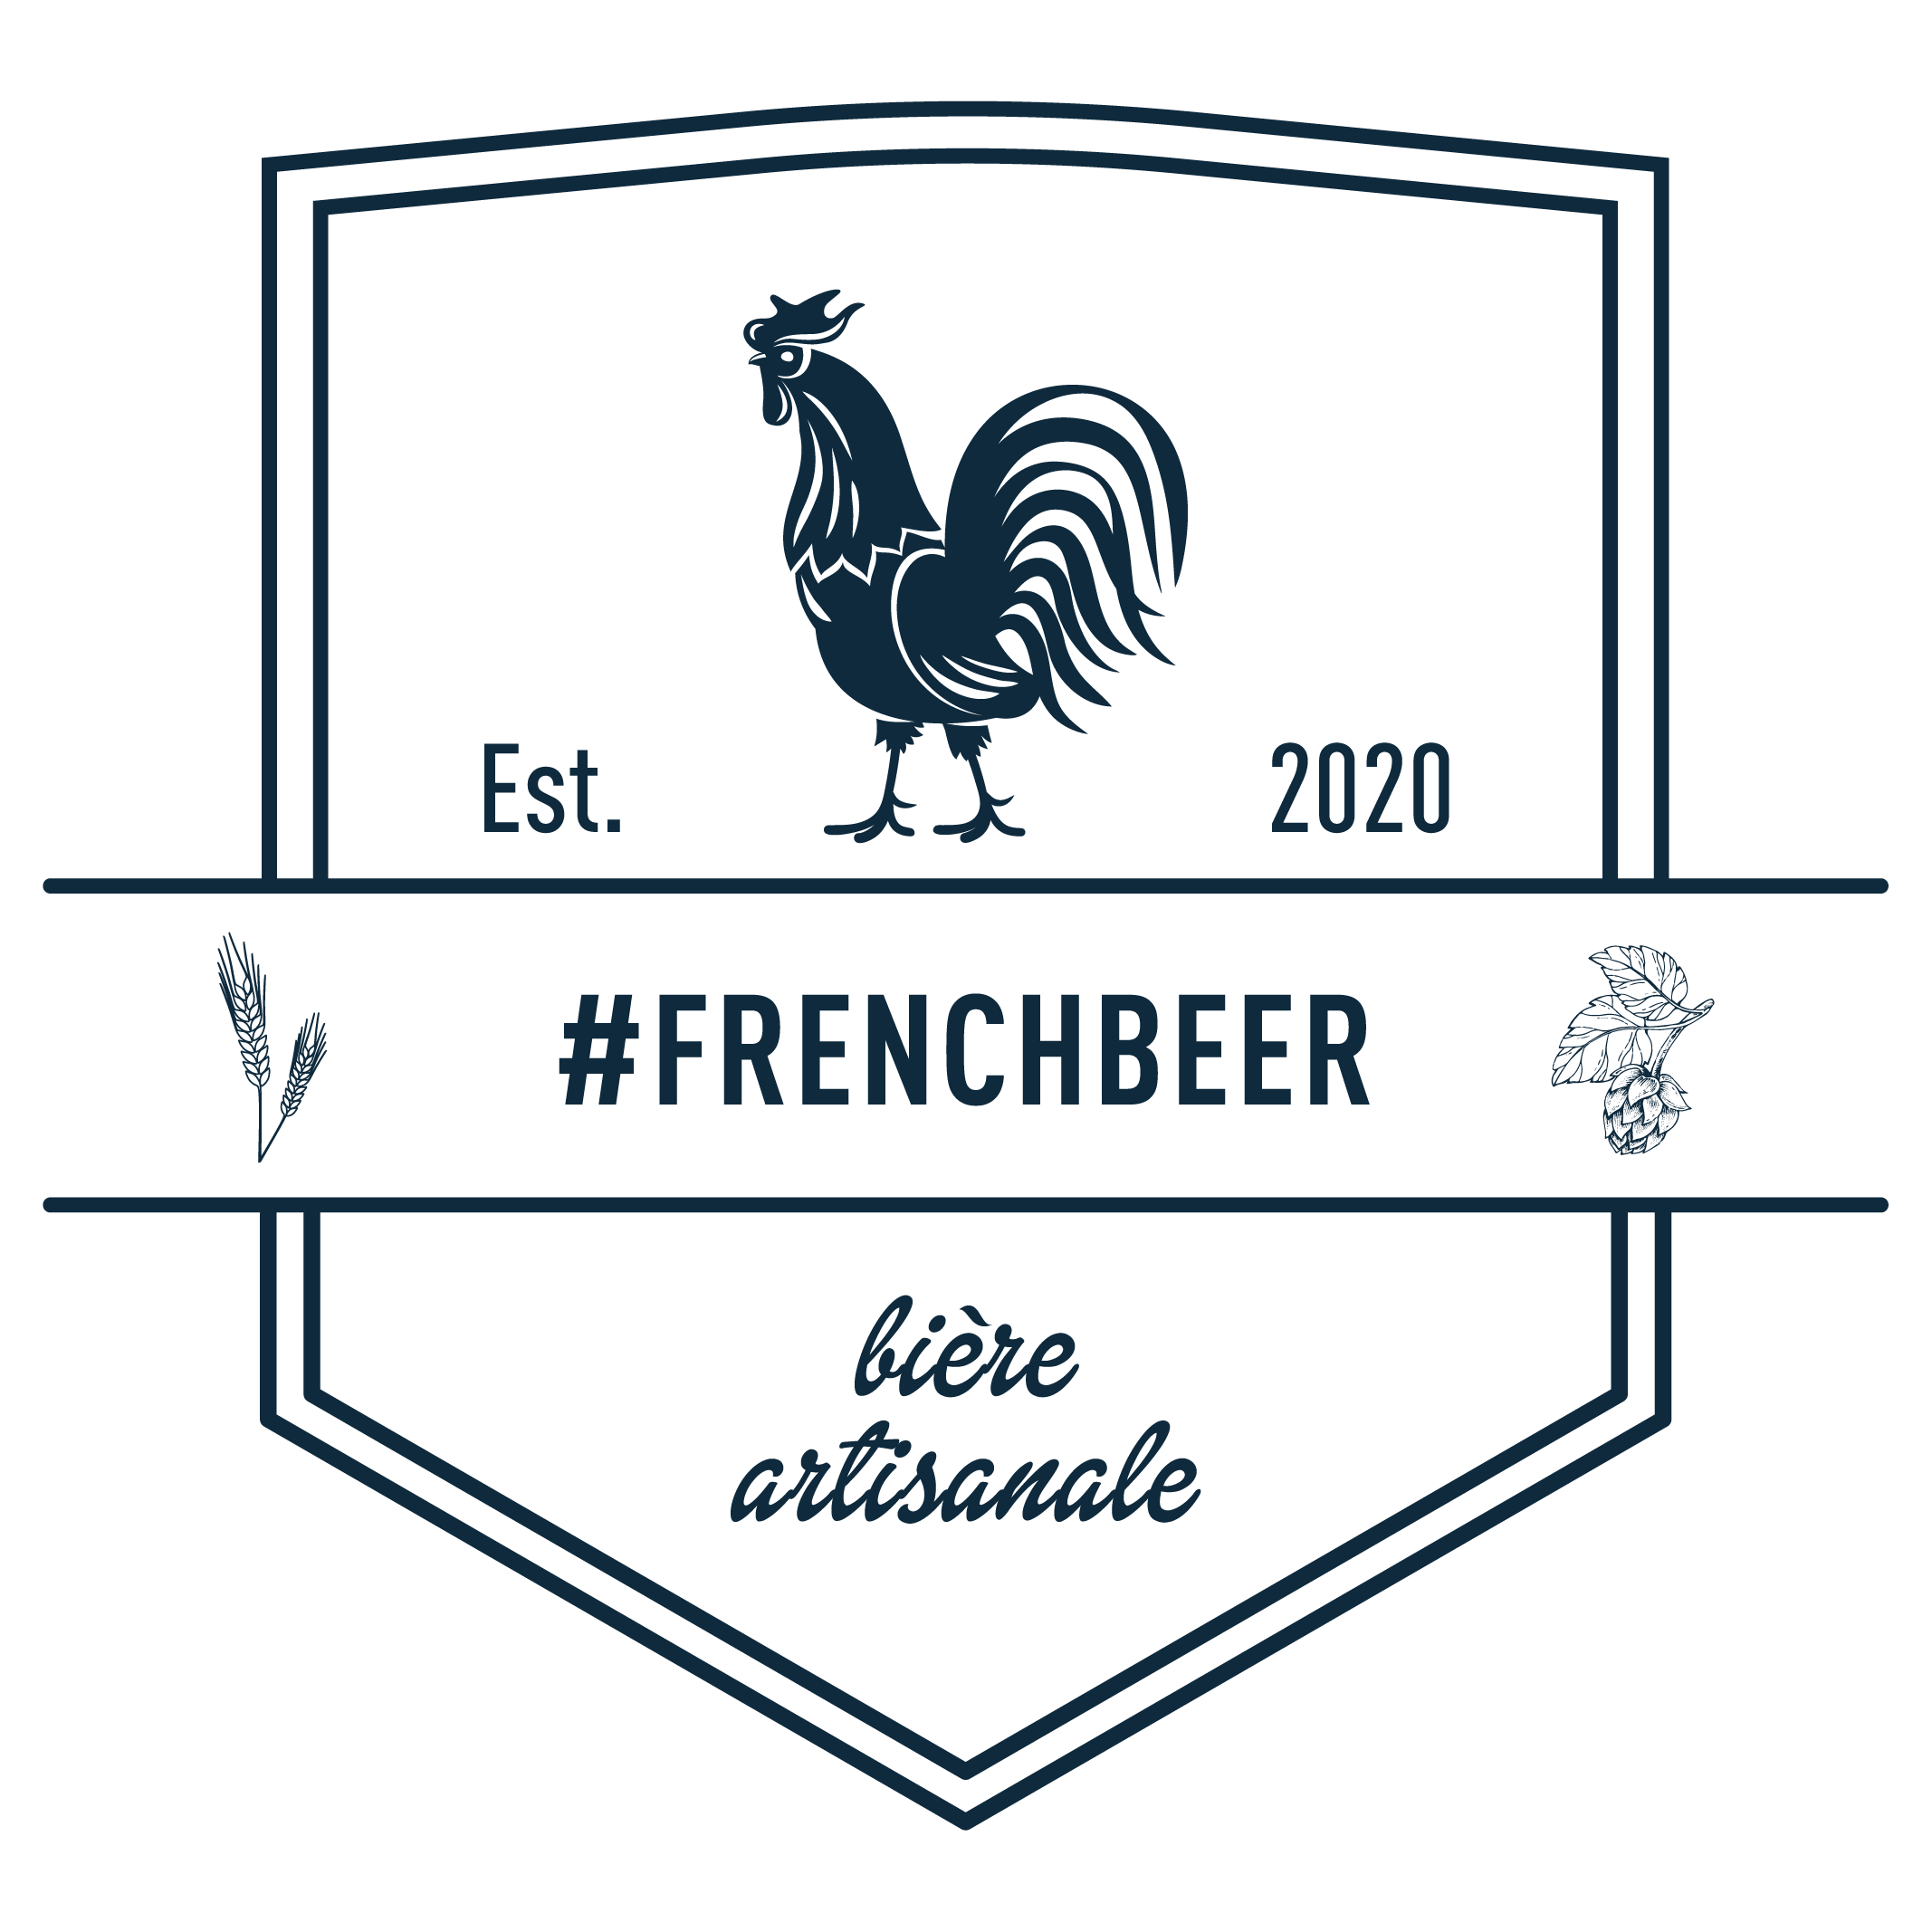 https://frenchbeer.fr/wp-content/uploads/2020/11/Logo_French_Beer_Web_Plan-de-travail-1.png